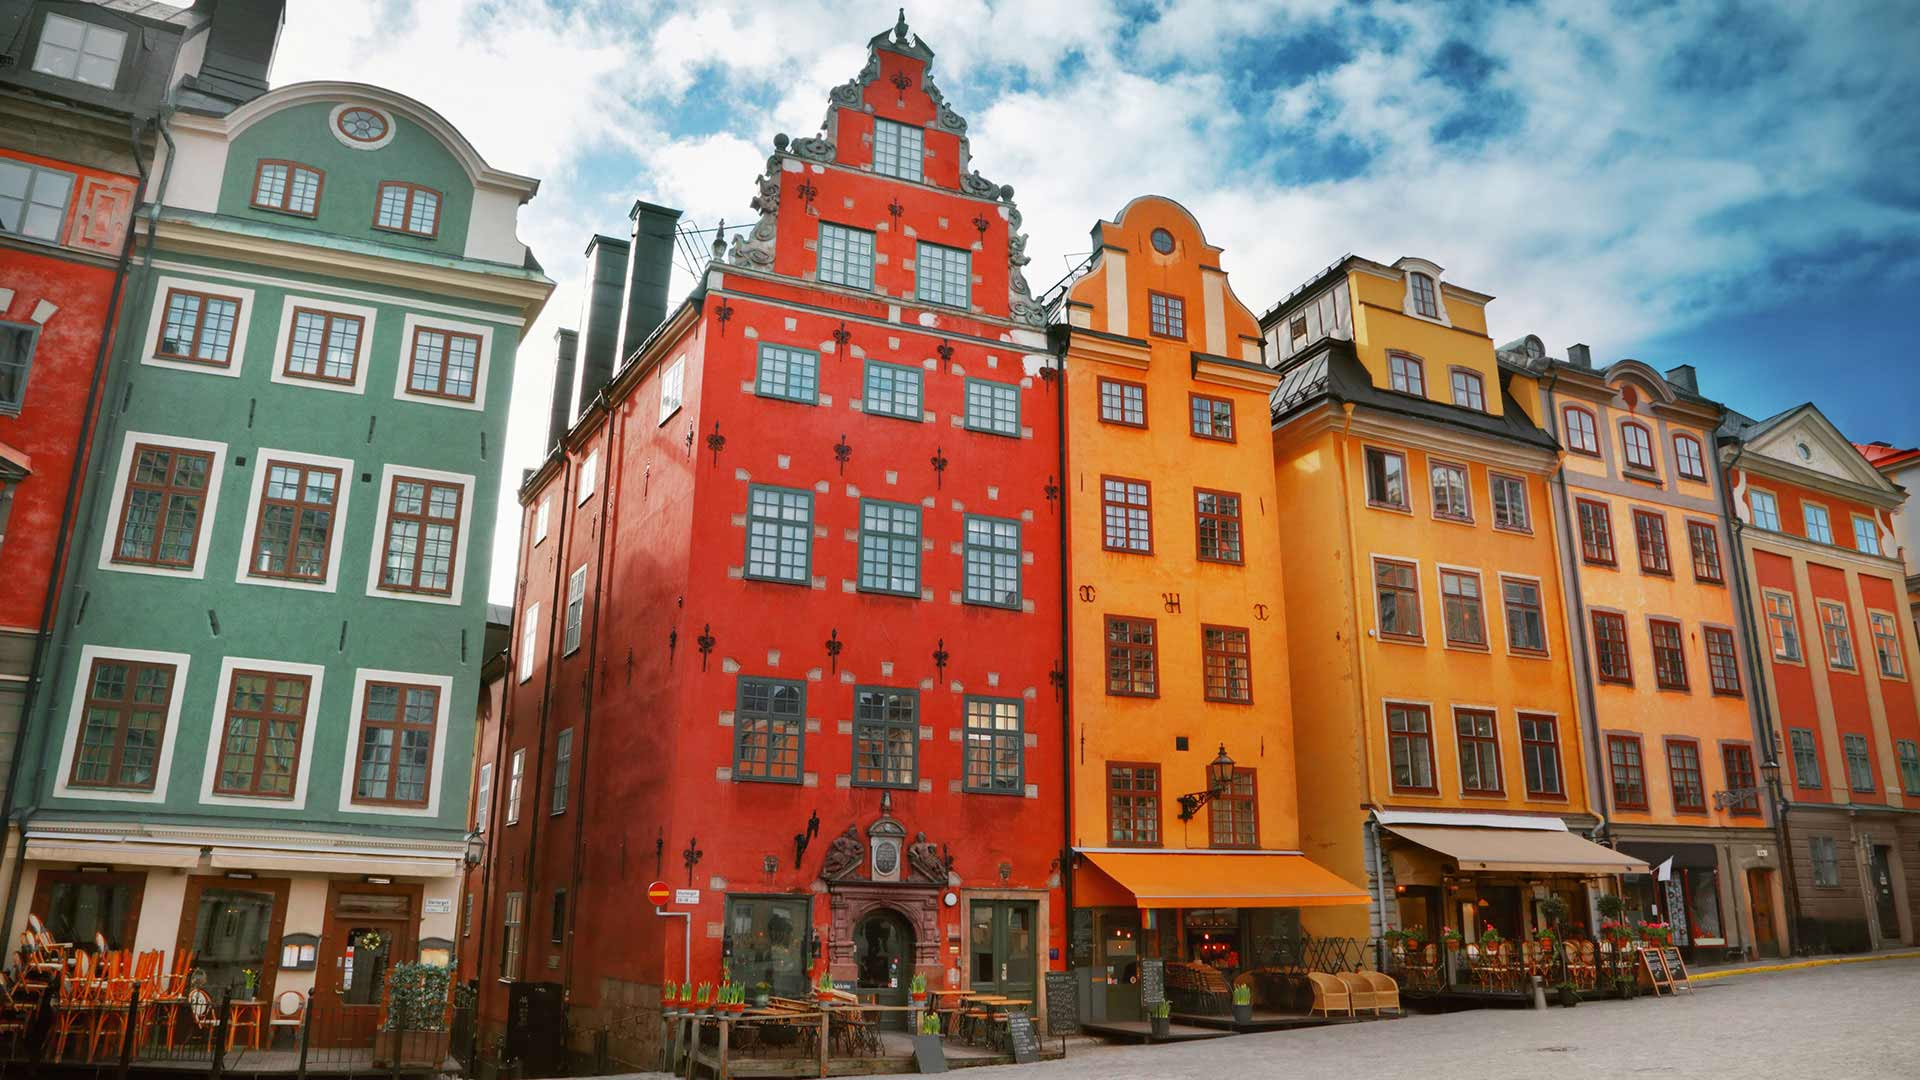 Old Town - Gamla Stan in Stockholm, Sweden